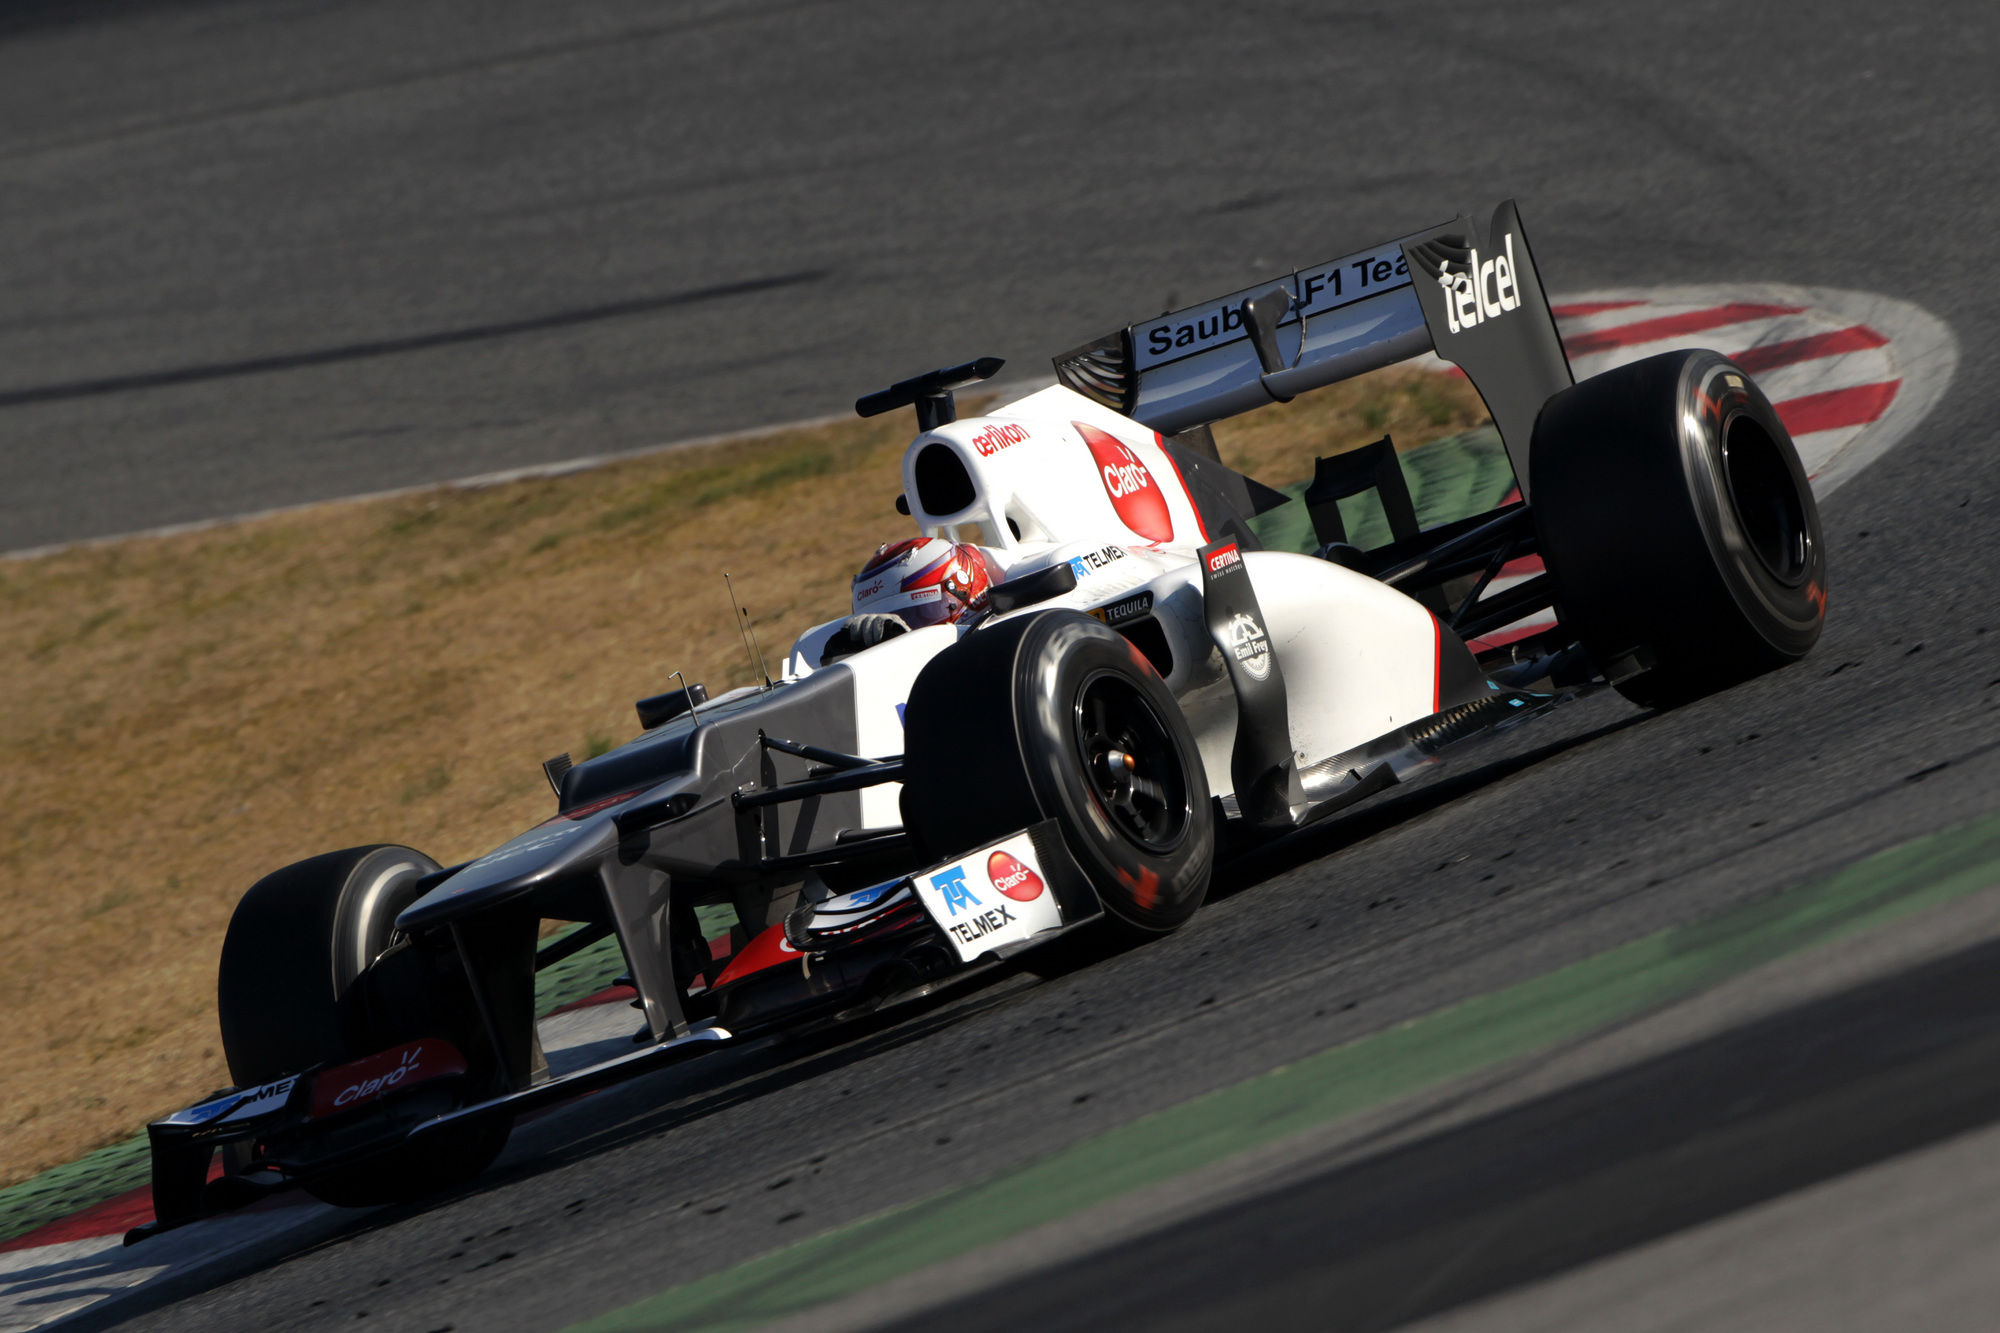 Sauber Driver Kamui Kobayashi Fastest Driver on Day 4 of F1 Testing